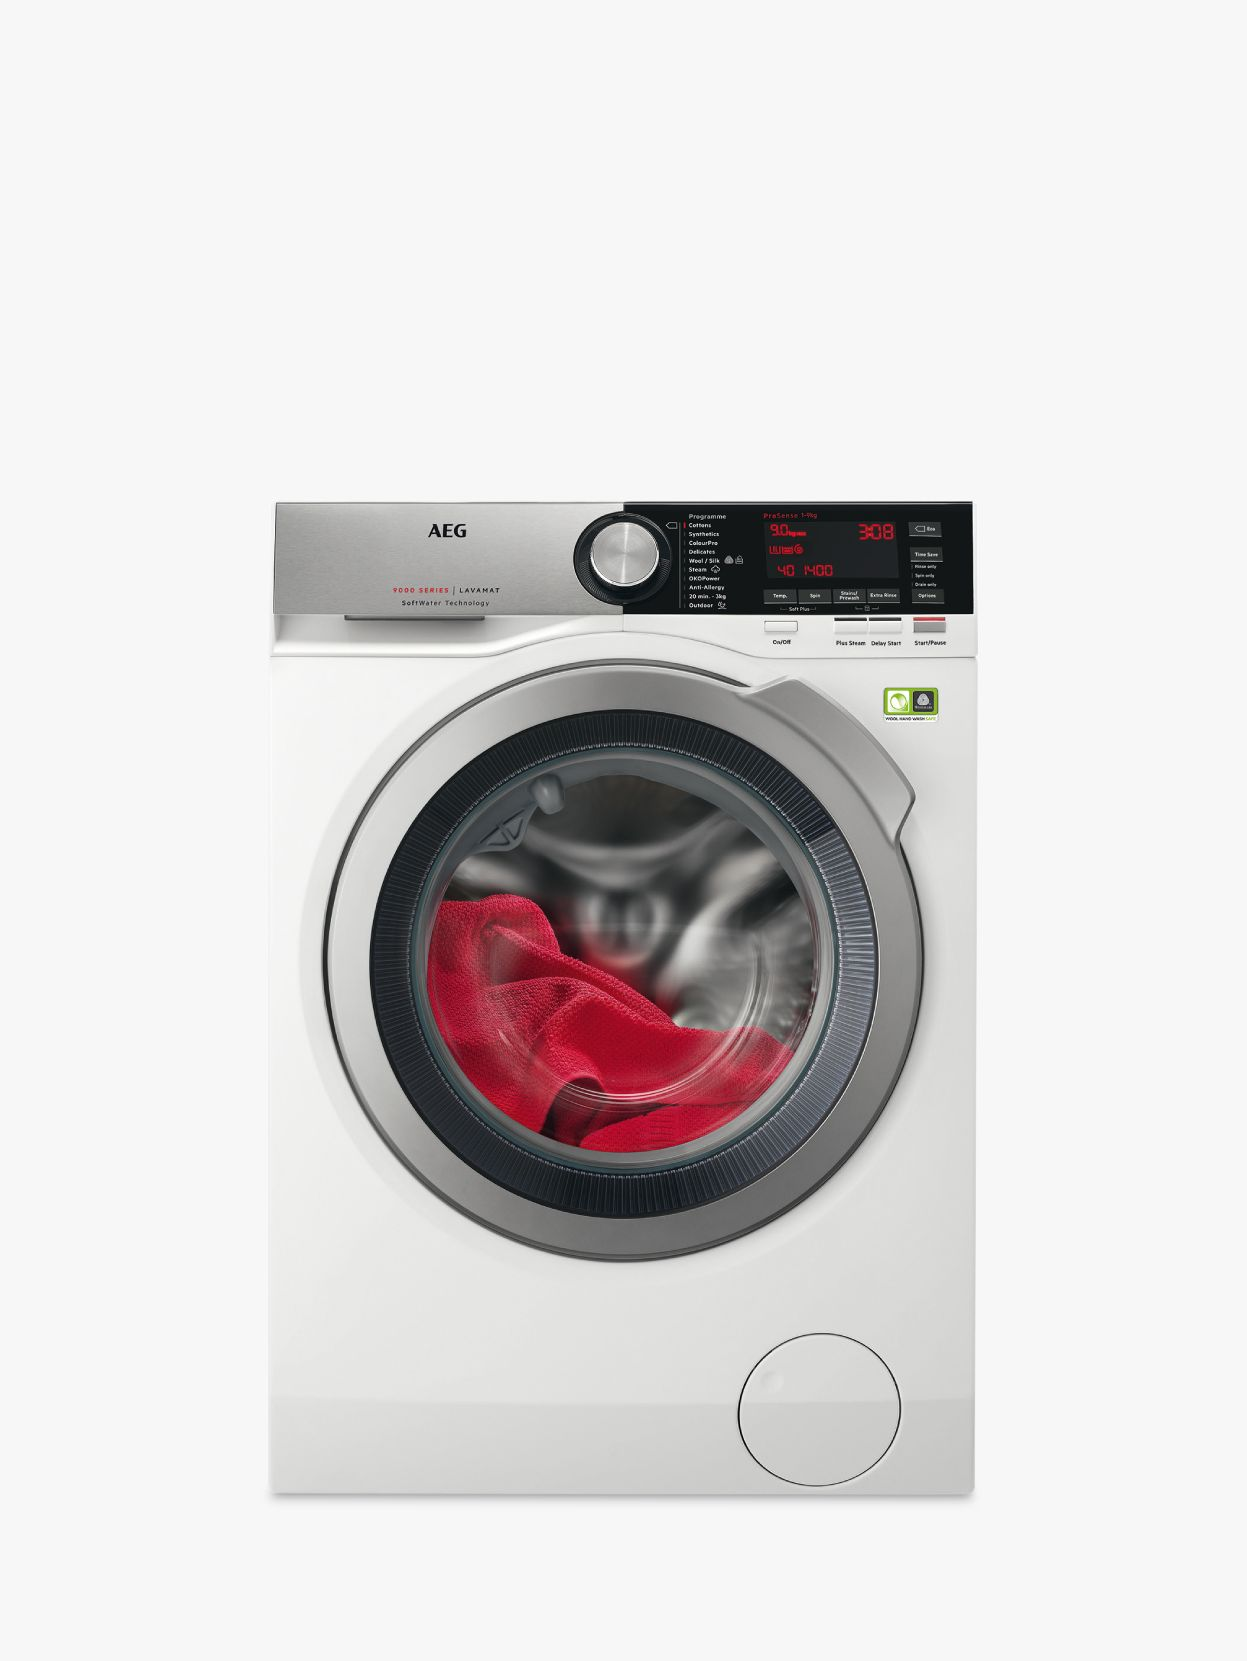 AEG AEG ProSteam Technology L9FEC946R Freestanding Washing Machine, 9kg Load, A+++ Energy Rating, 1400rpm Spin, White